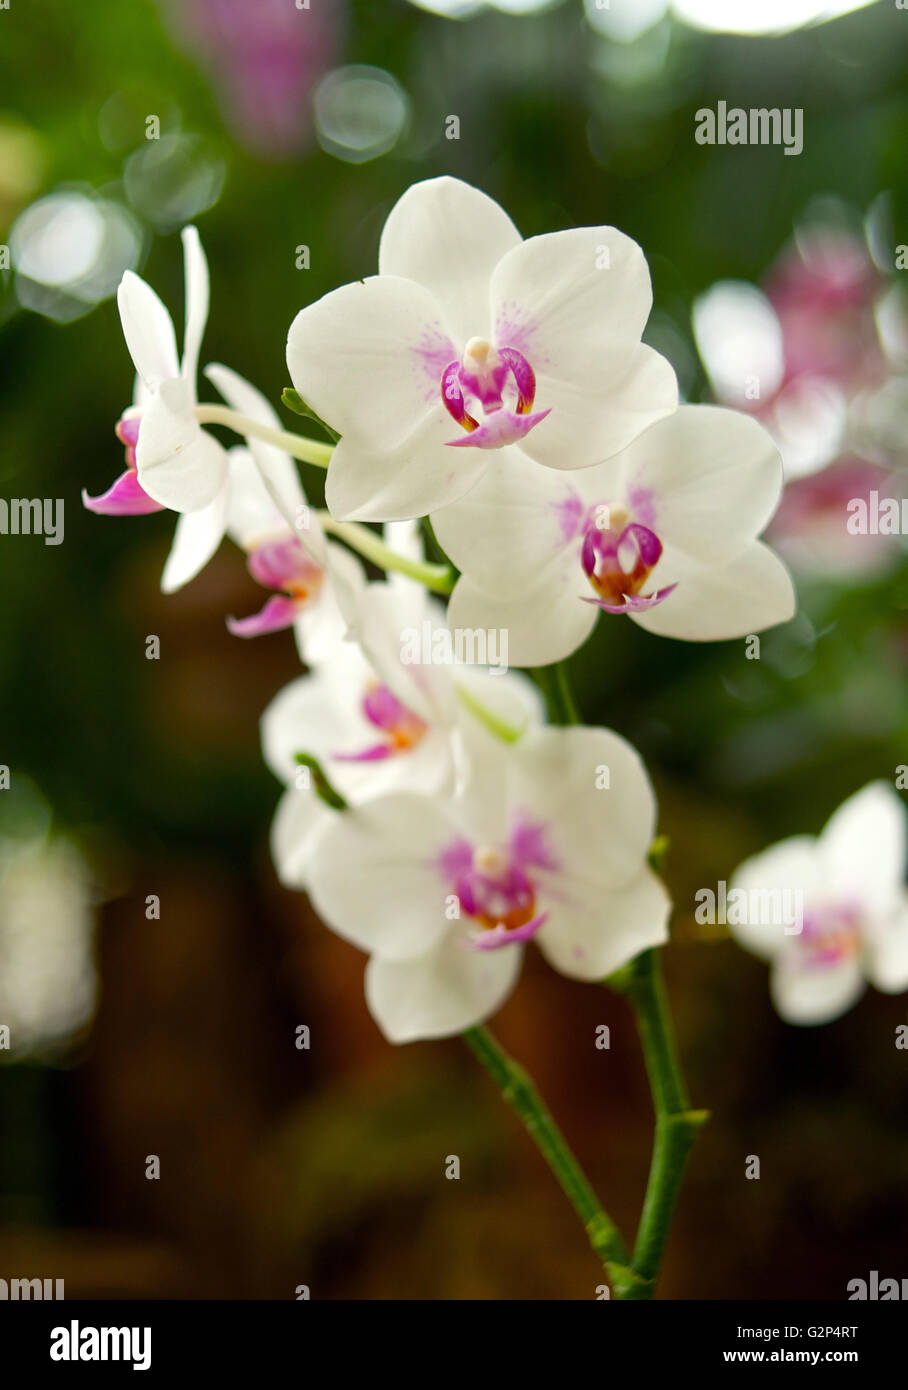 White orchid in close up natural lighting - Stock Image